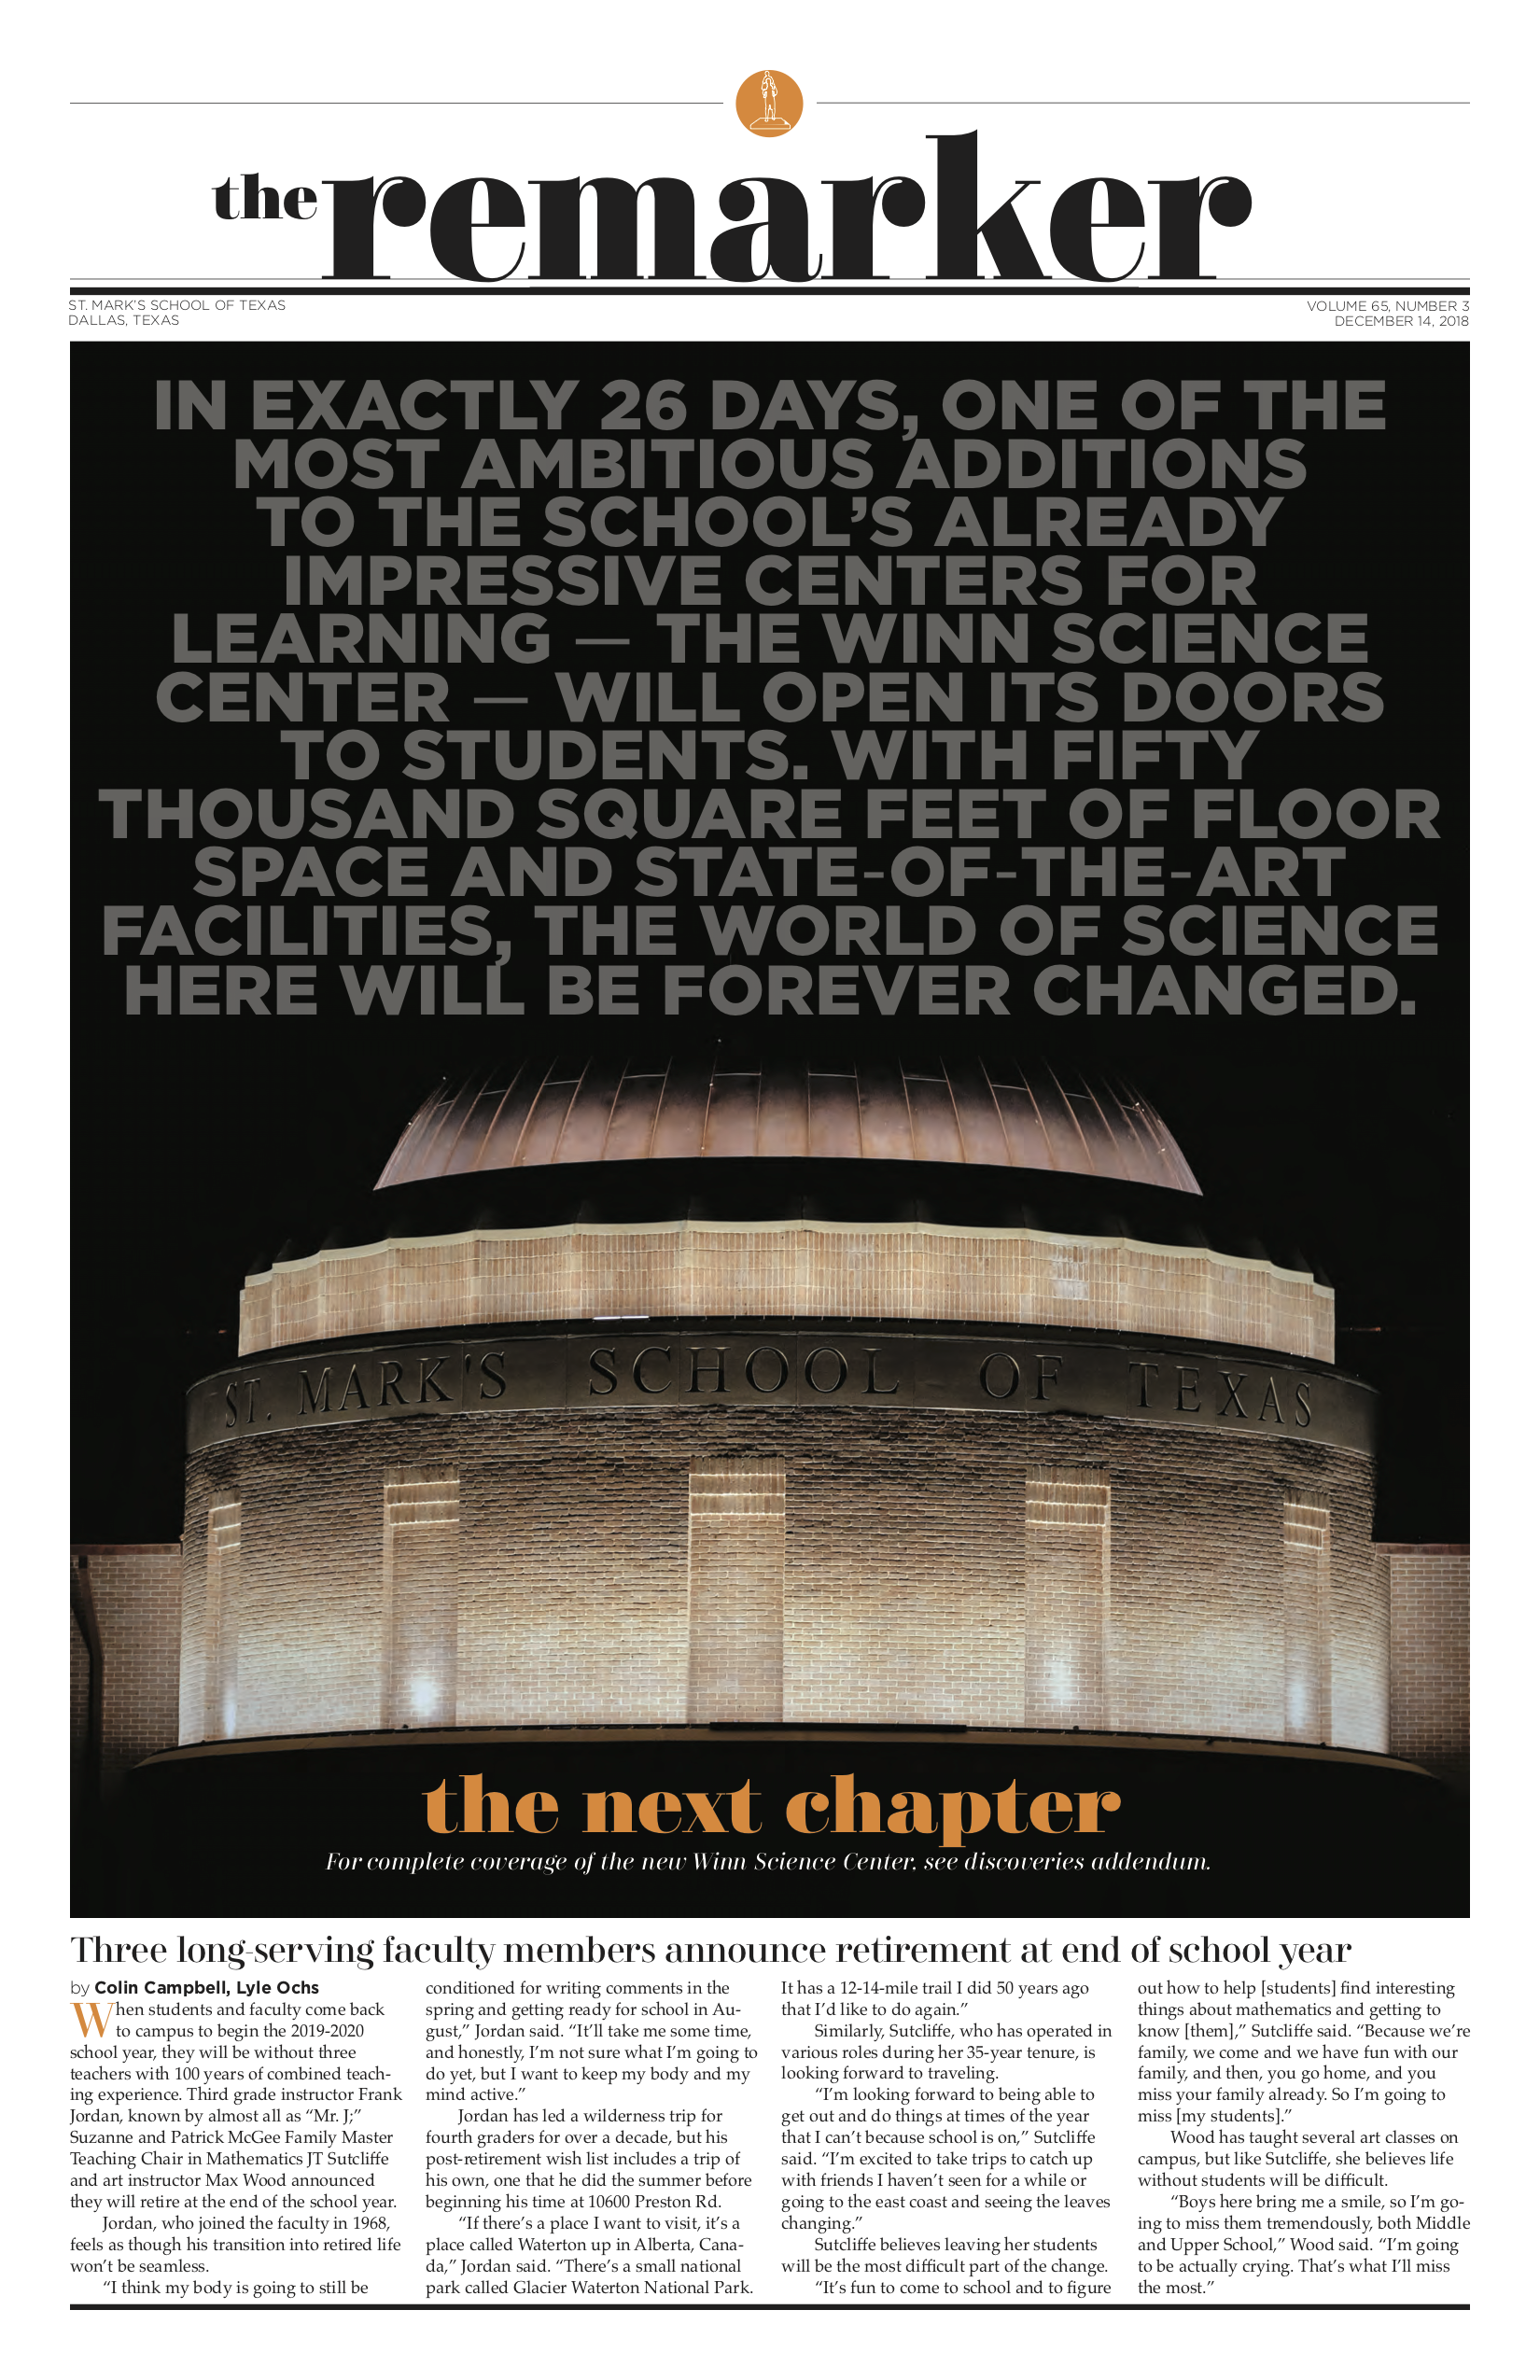 In January, our school opened a new, world-class science facility. For our December paper, we hoped to help introduce our community to the newest addition to campus. Setting the background with the text seen above, we made the dominant visual of this cover the facade of the new building, which we would come to know as the next chapter of St. Mark's.